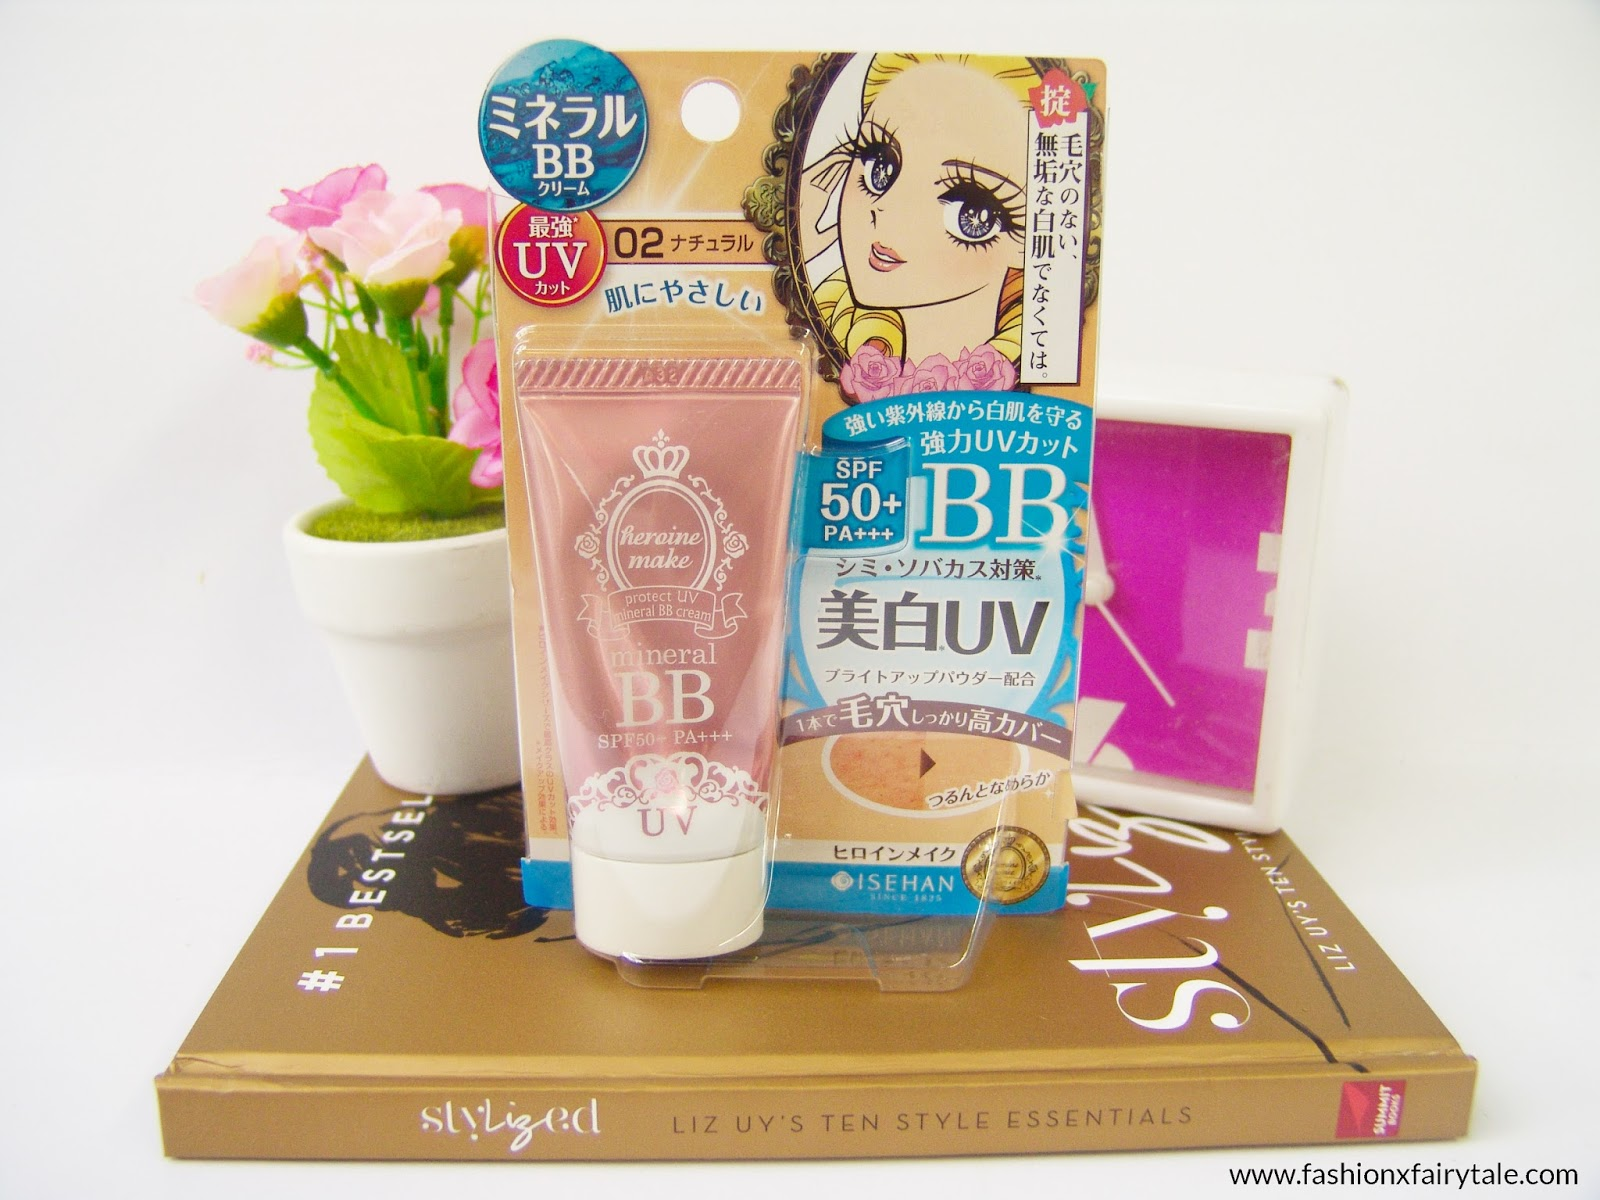 Heroine Make Mineral BB Cream | Review & Swatches